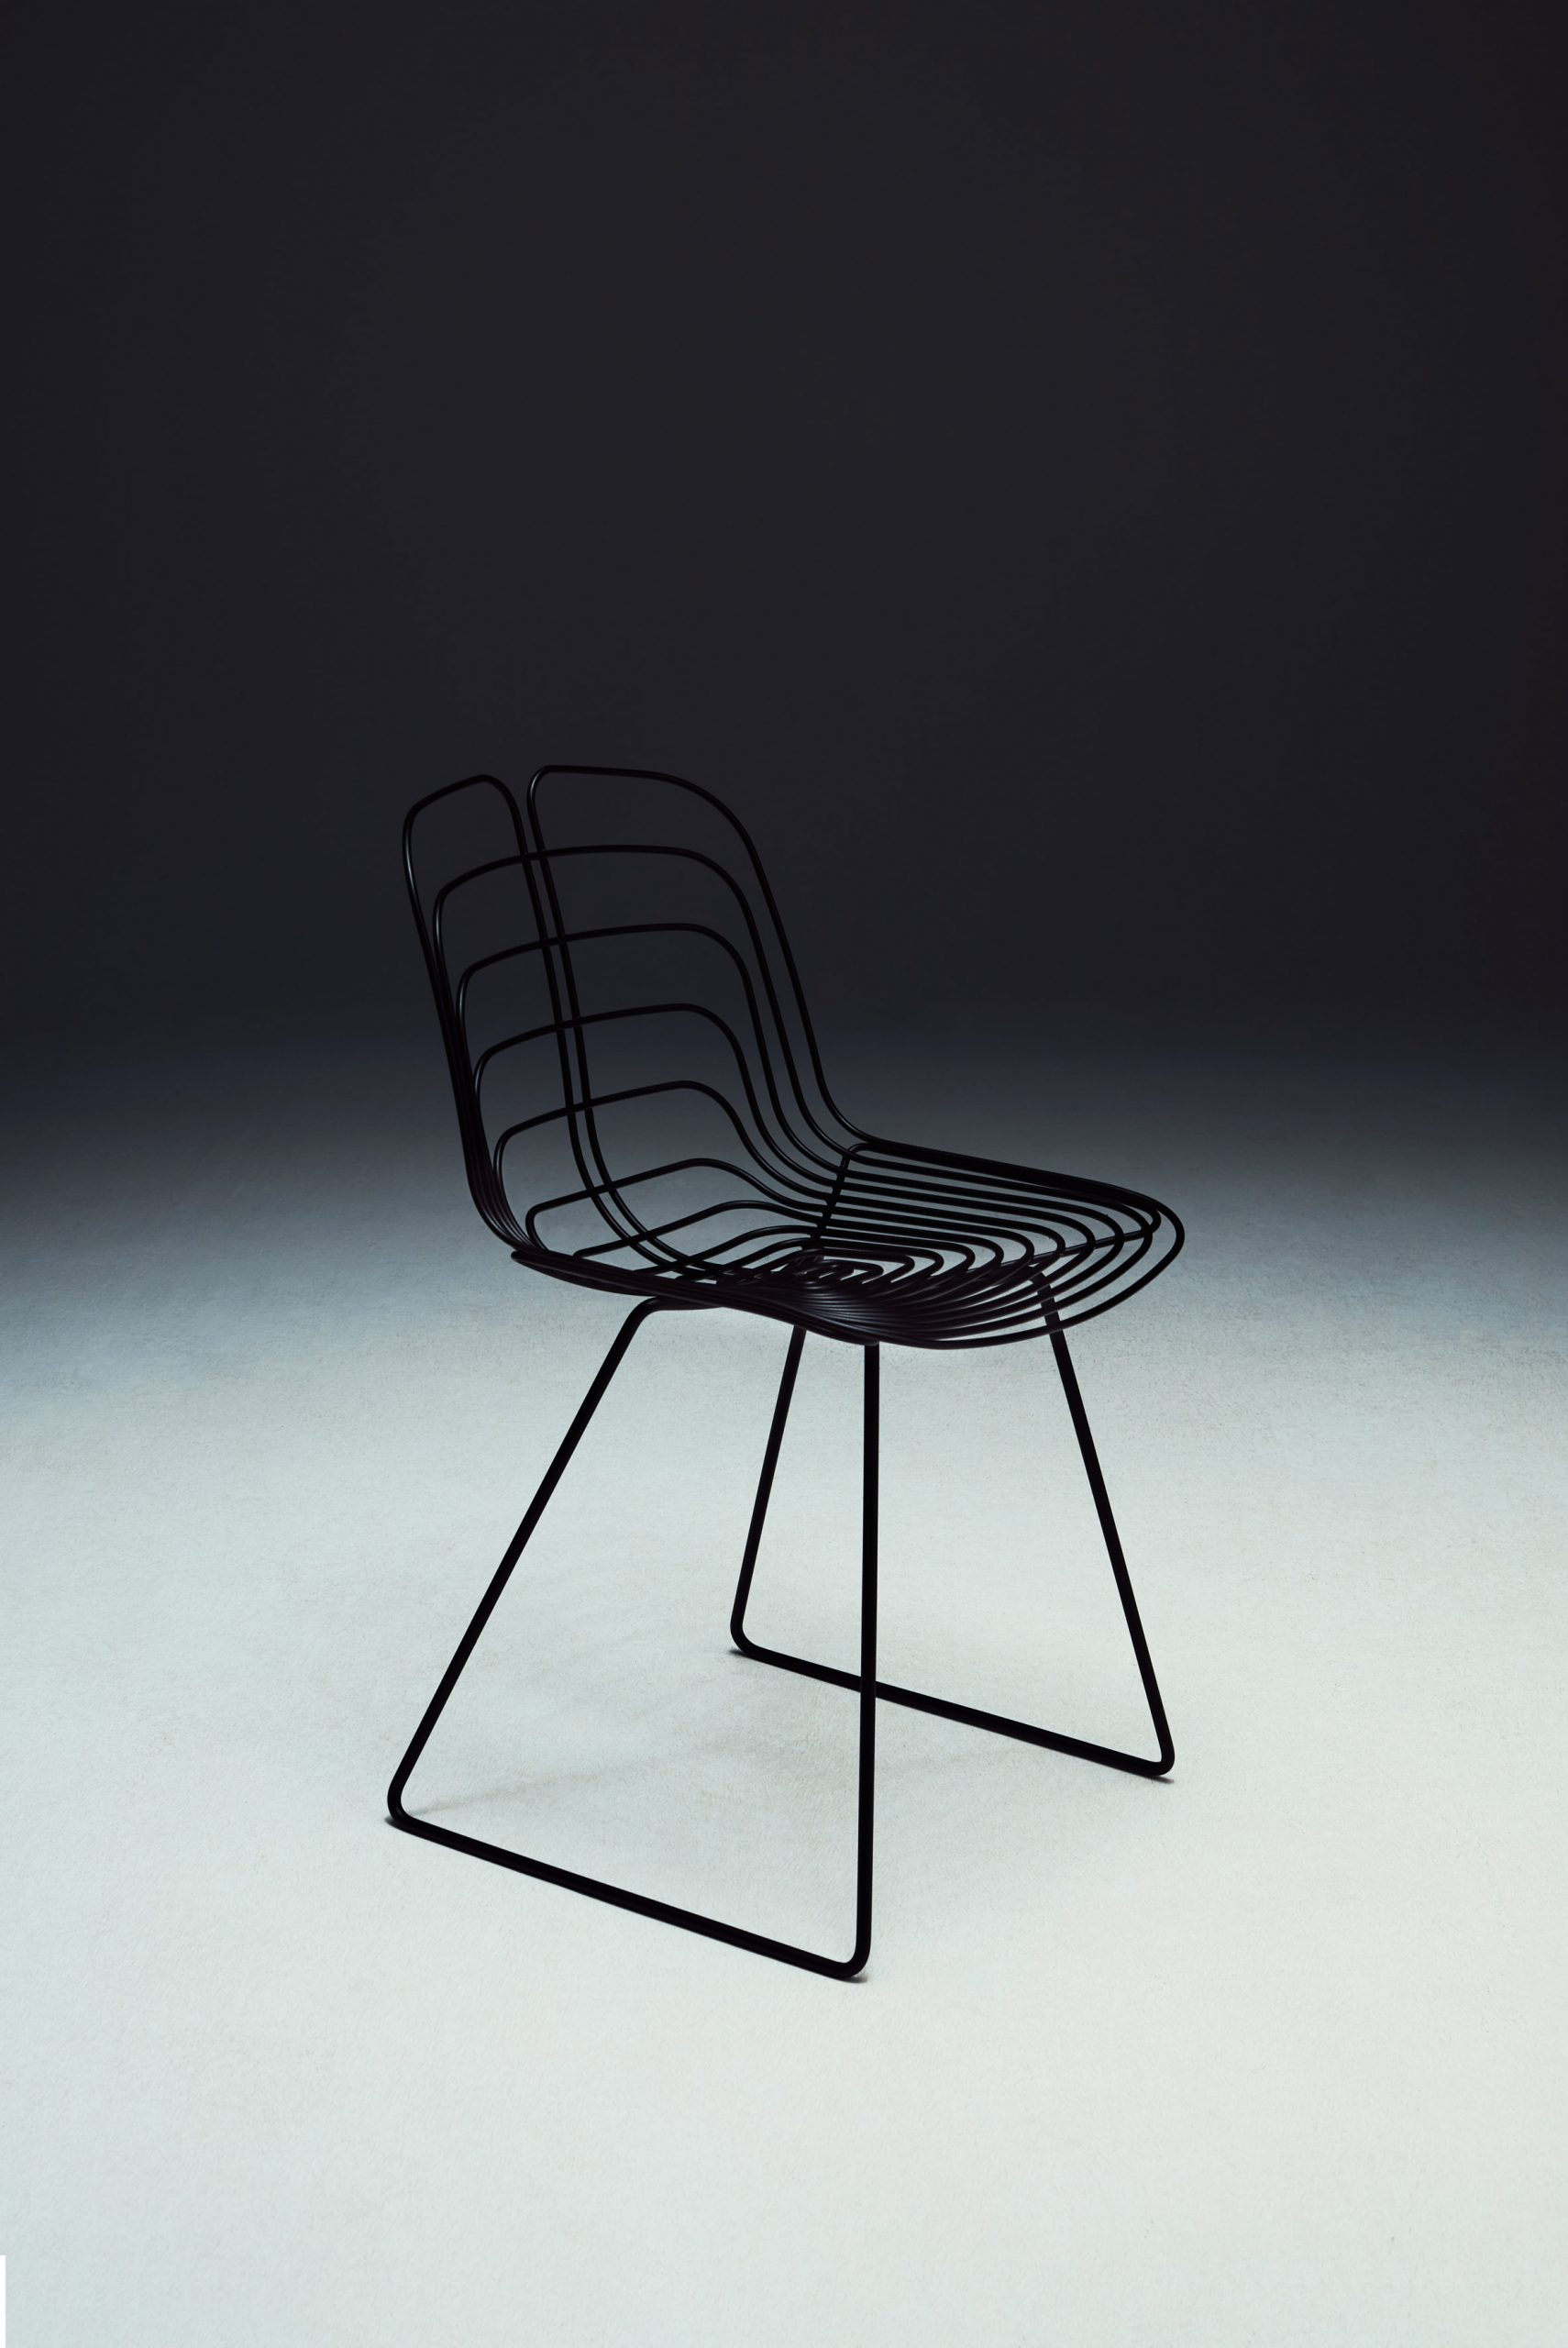 Black chair with sled legs by Michael Young for La Manufacture